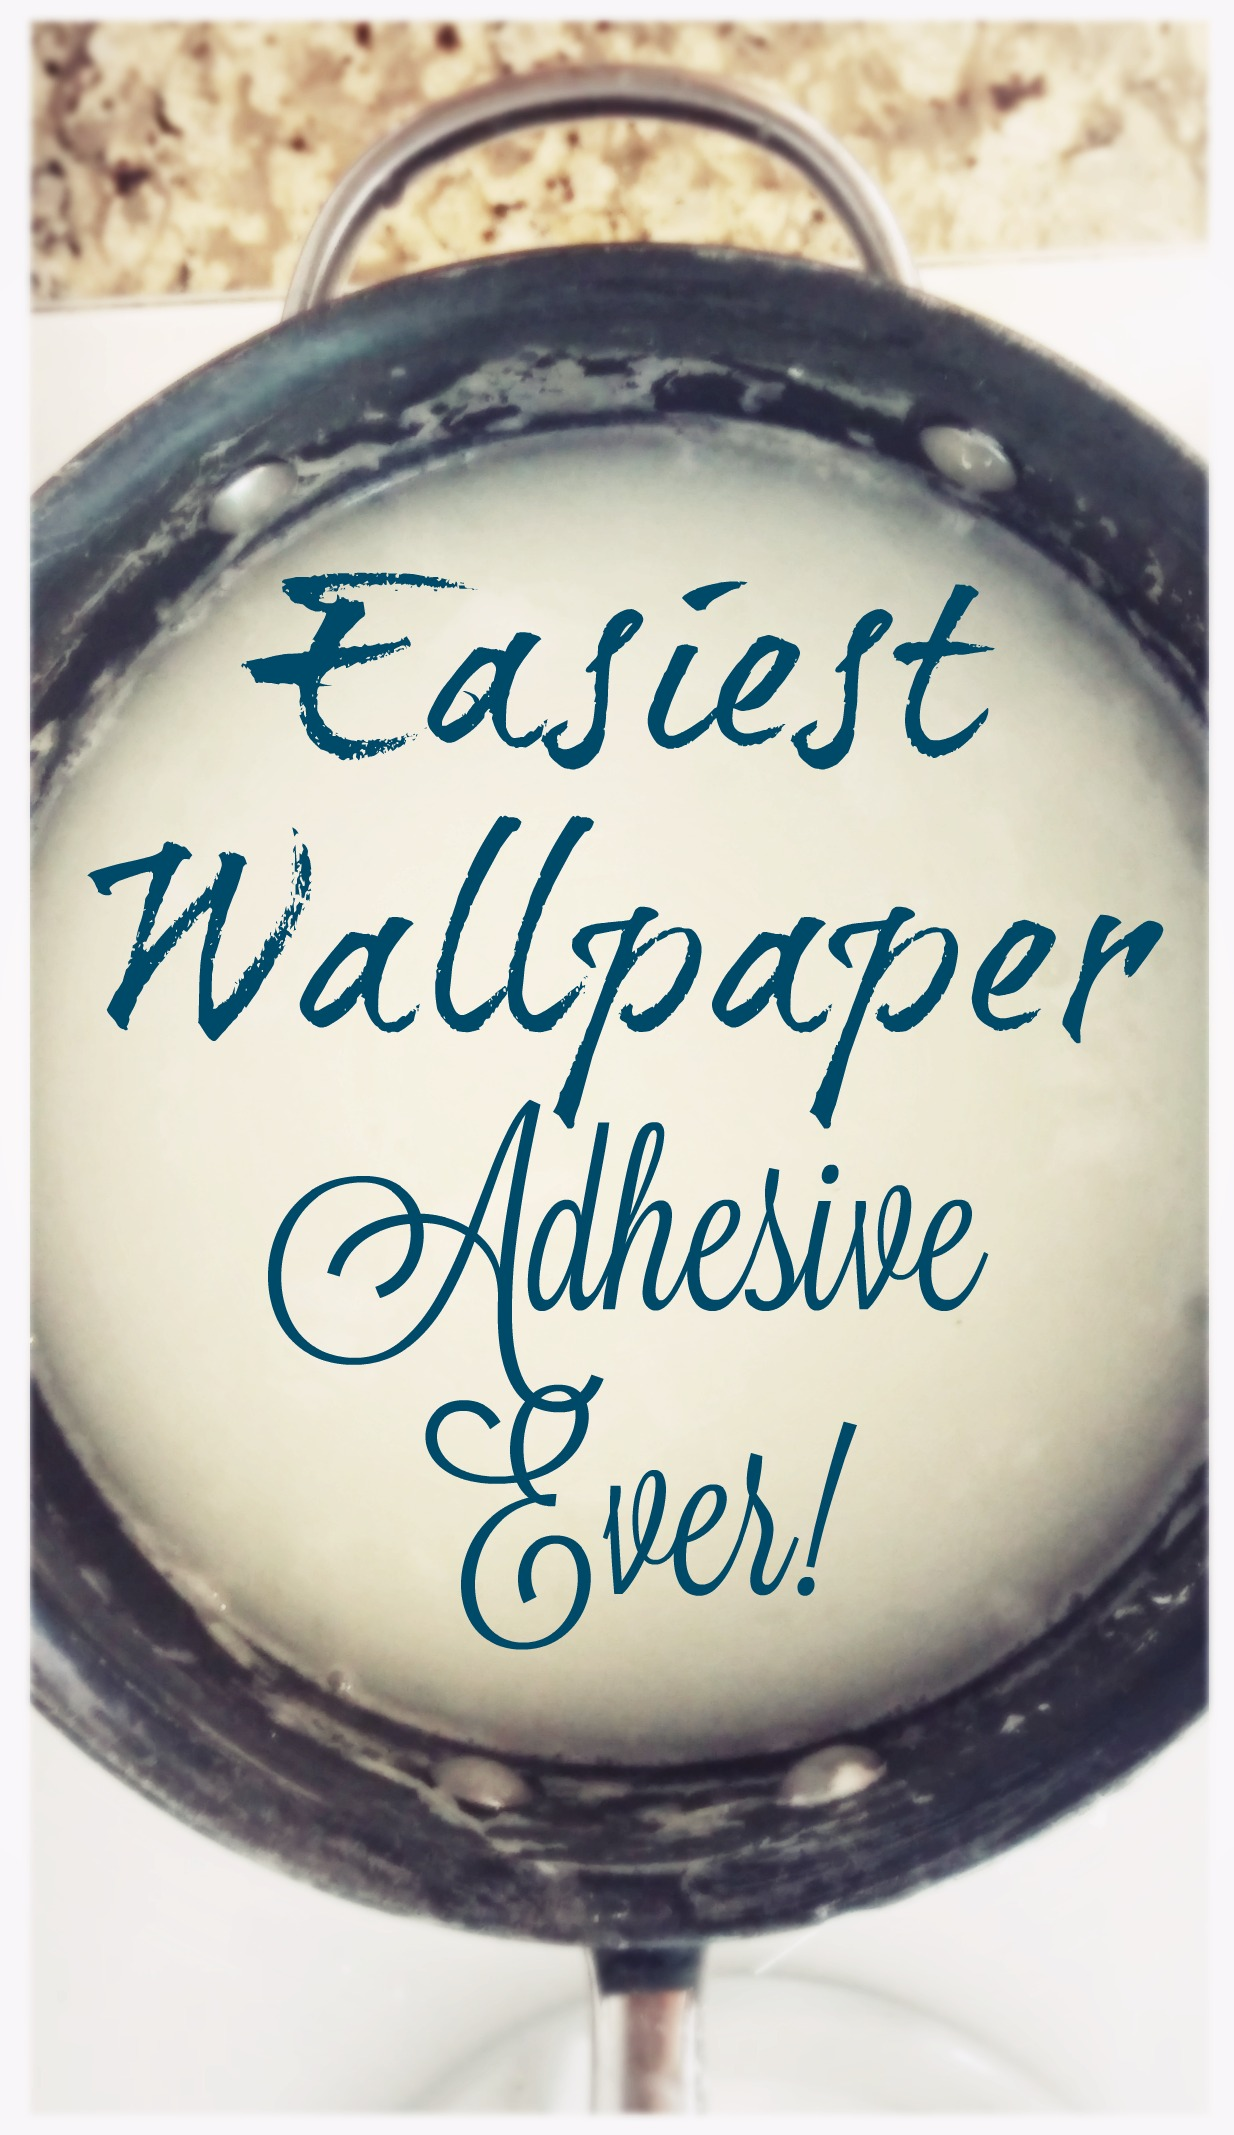 Picture of Make Wall Paper Adhesive